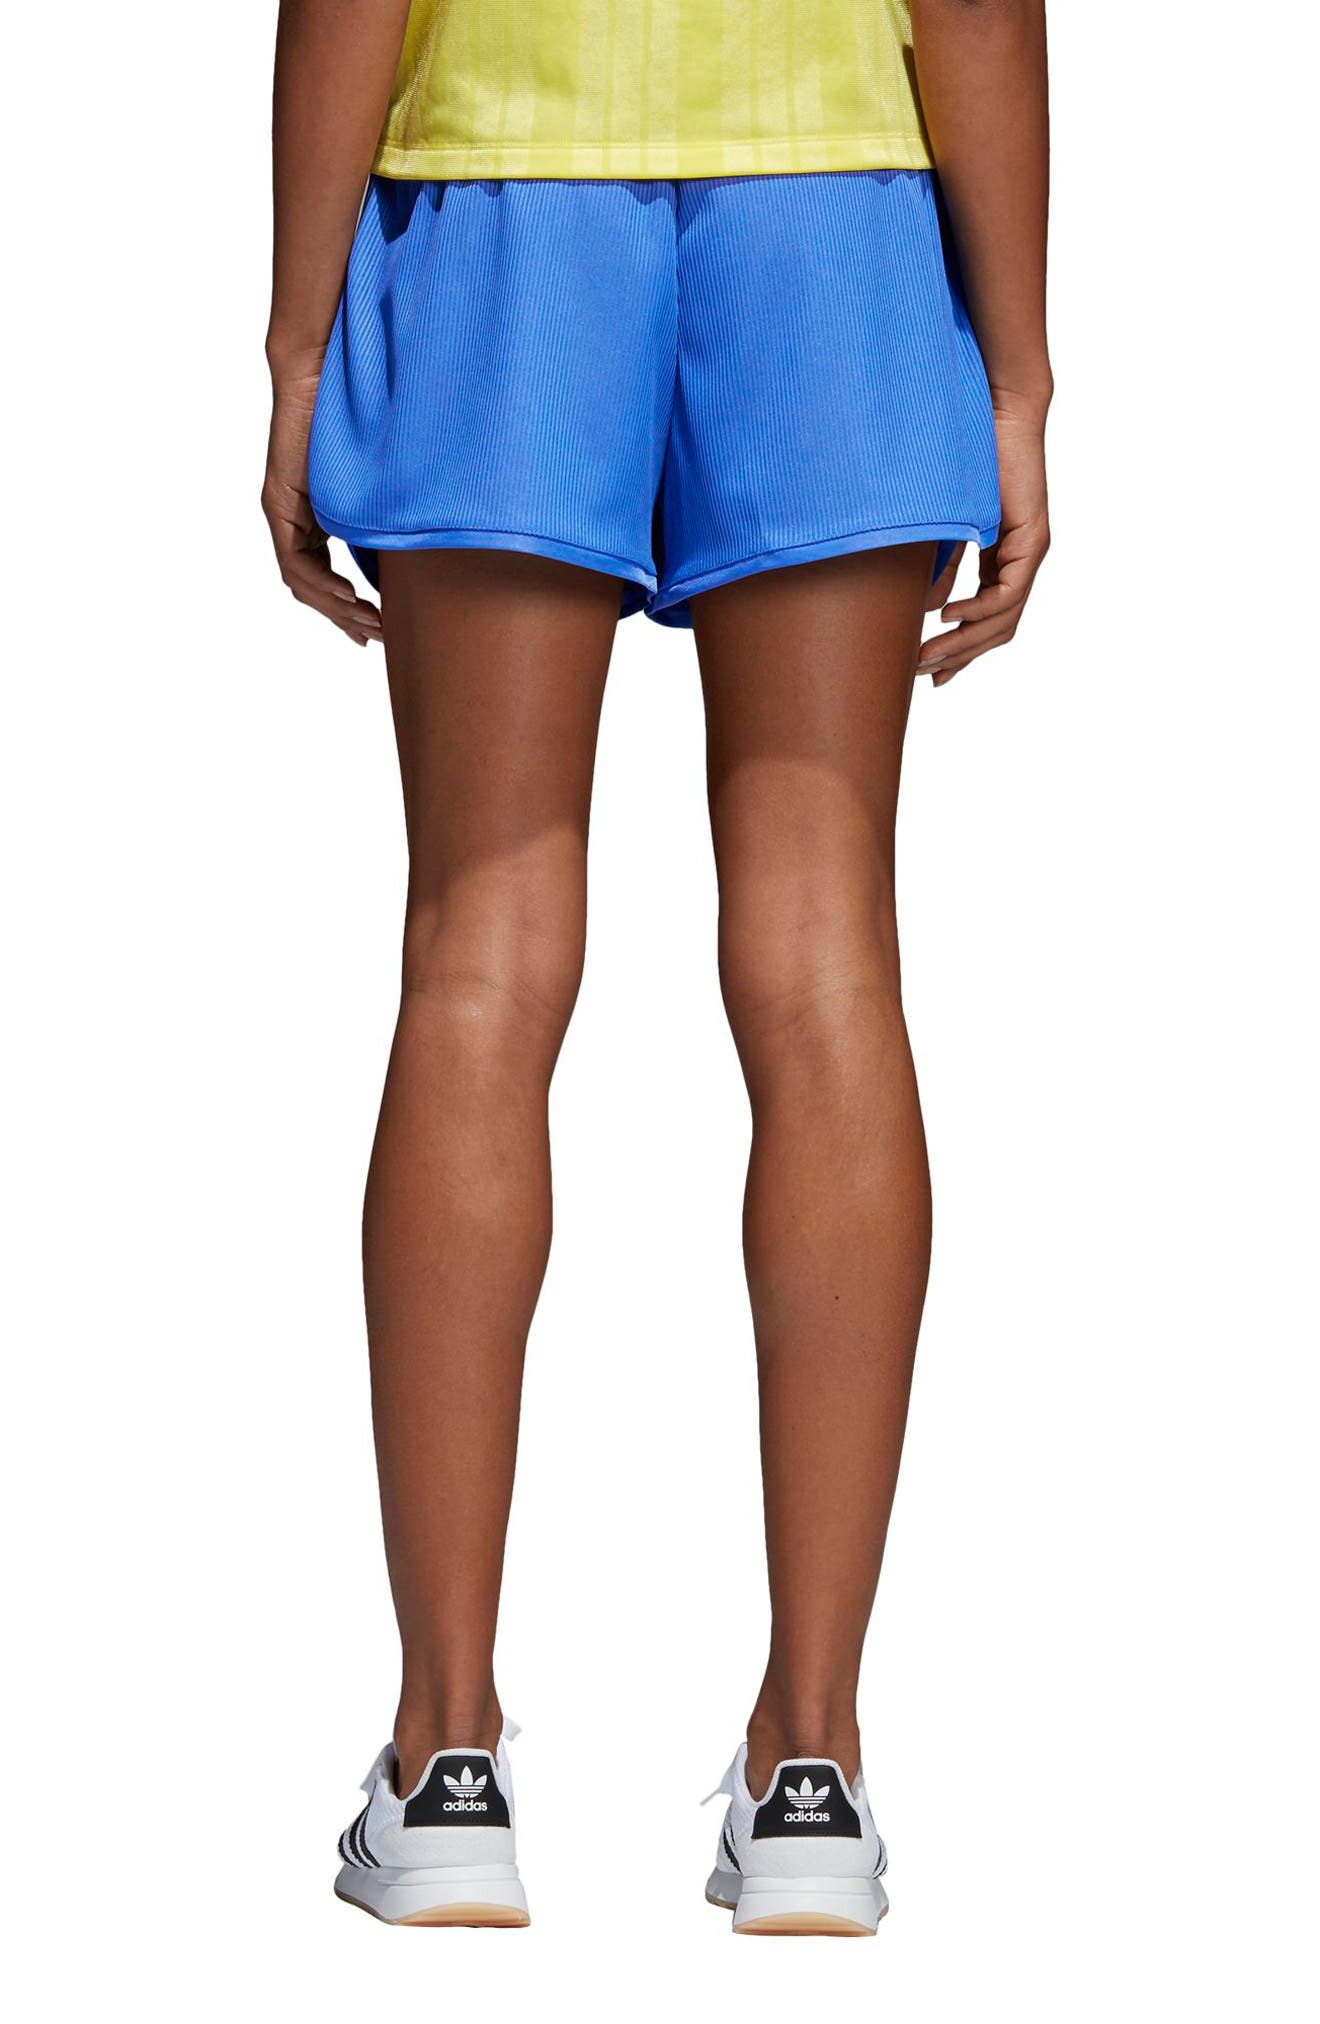 Originals Fashion League Shorts,                             Alternate thumbnail 2, color,                             400